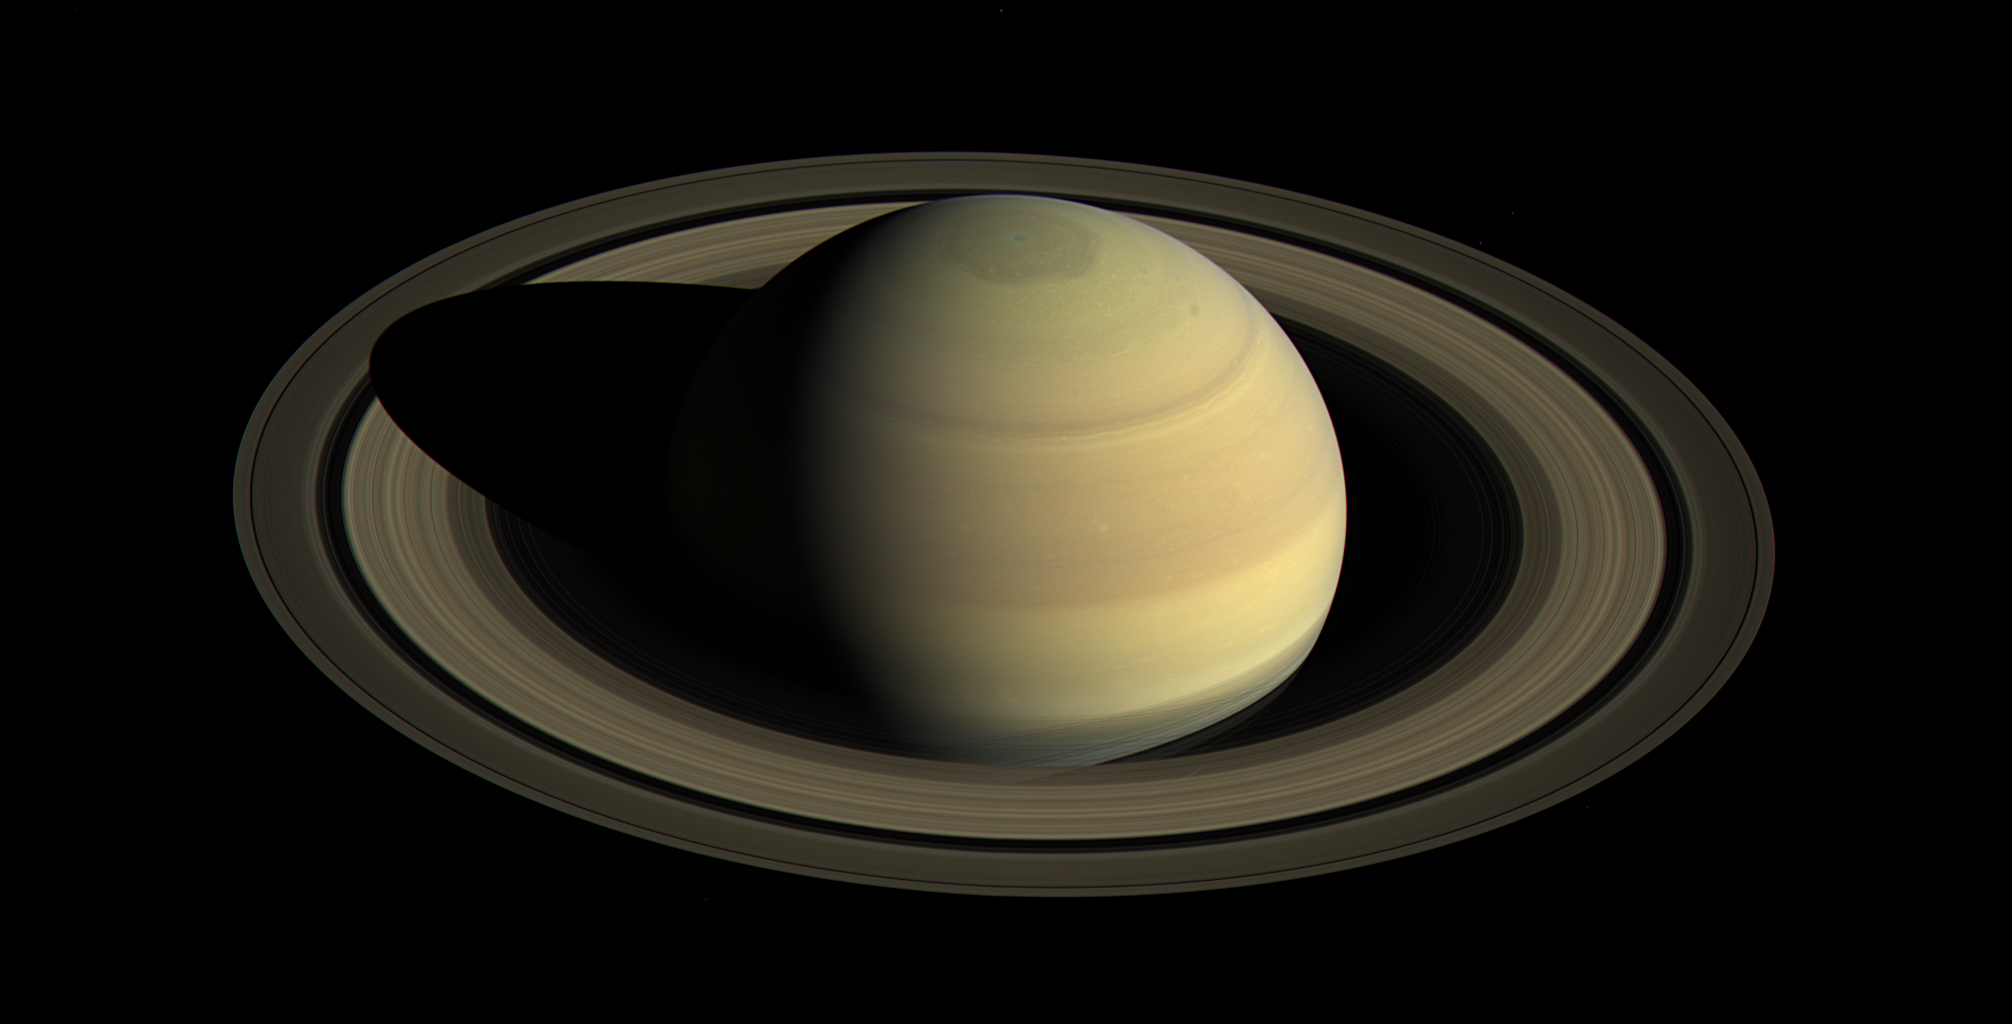 An Iconic Saturn image from the Cassini mission